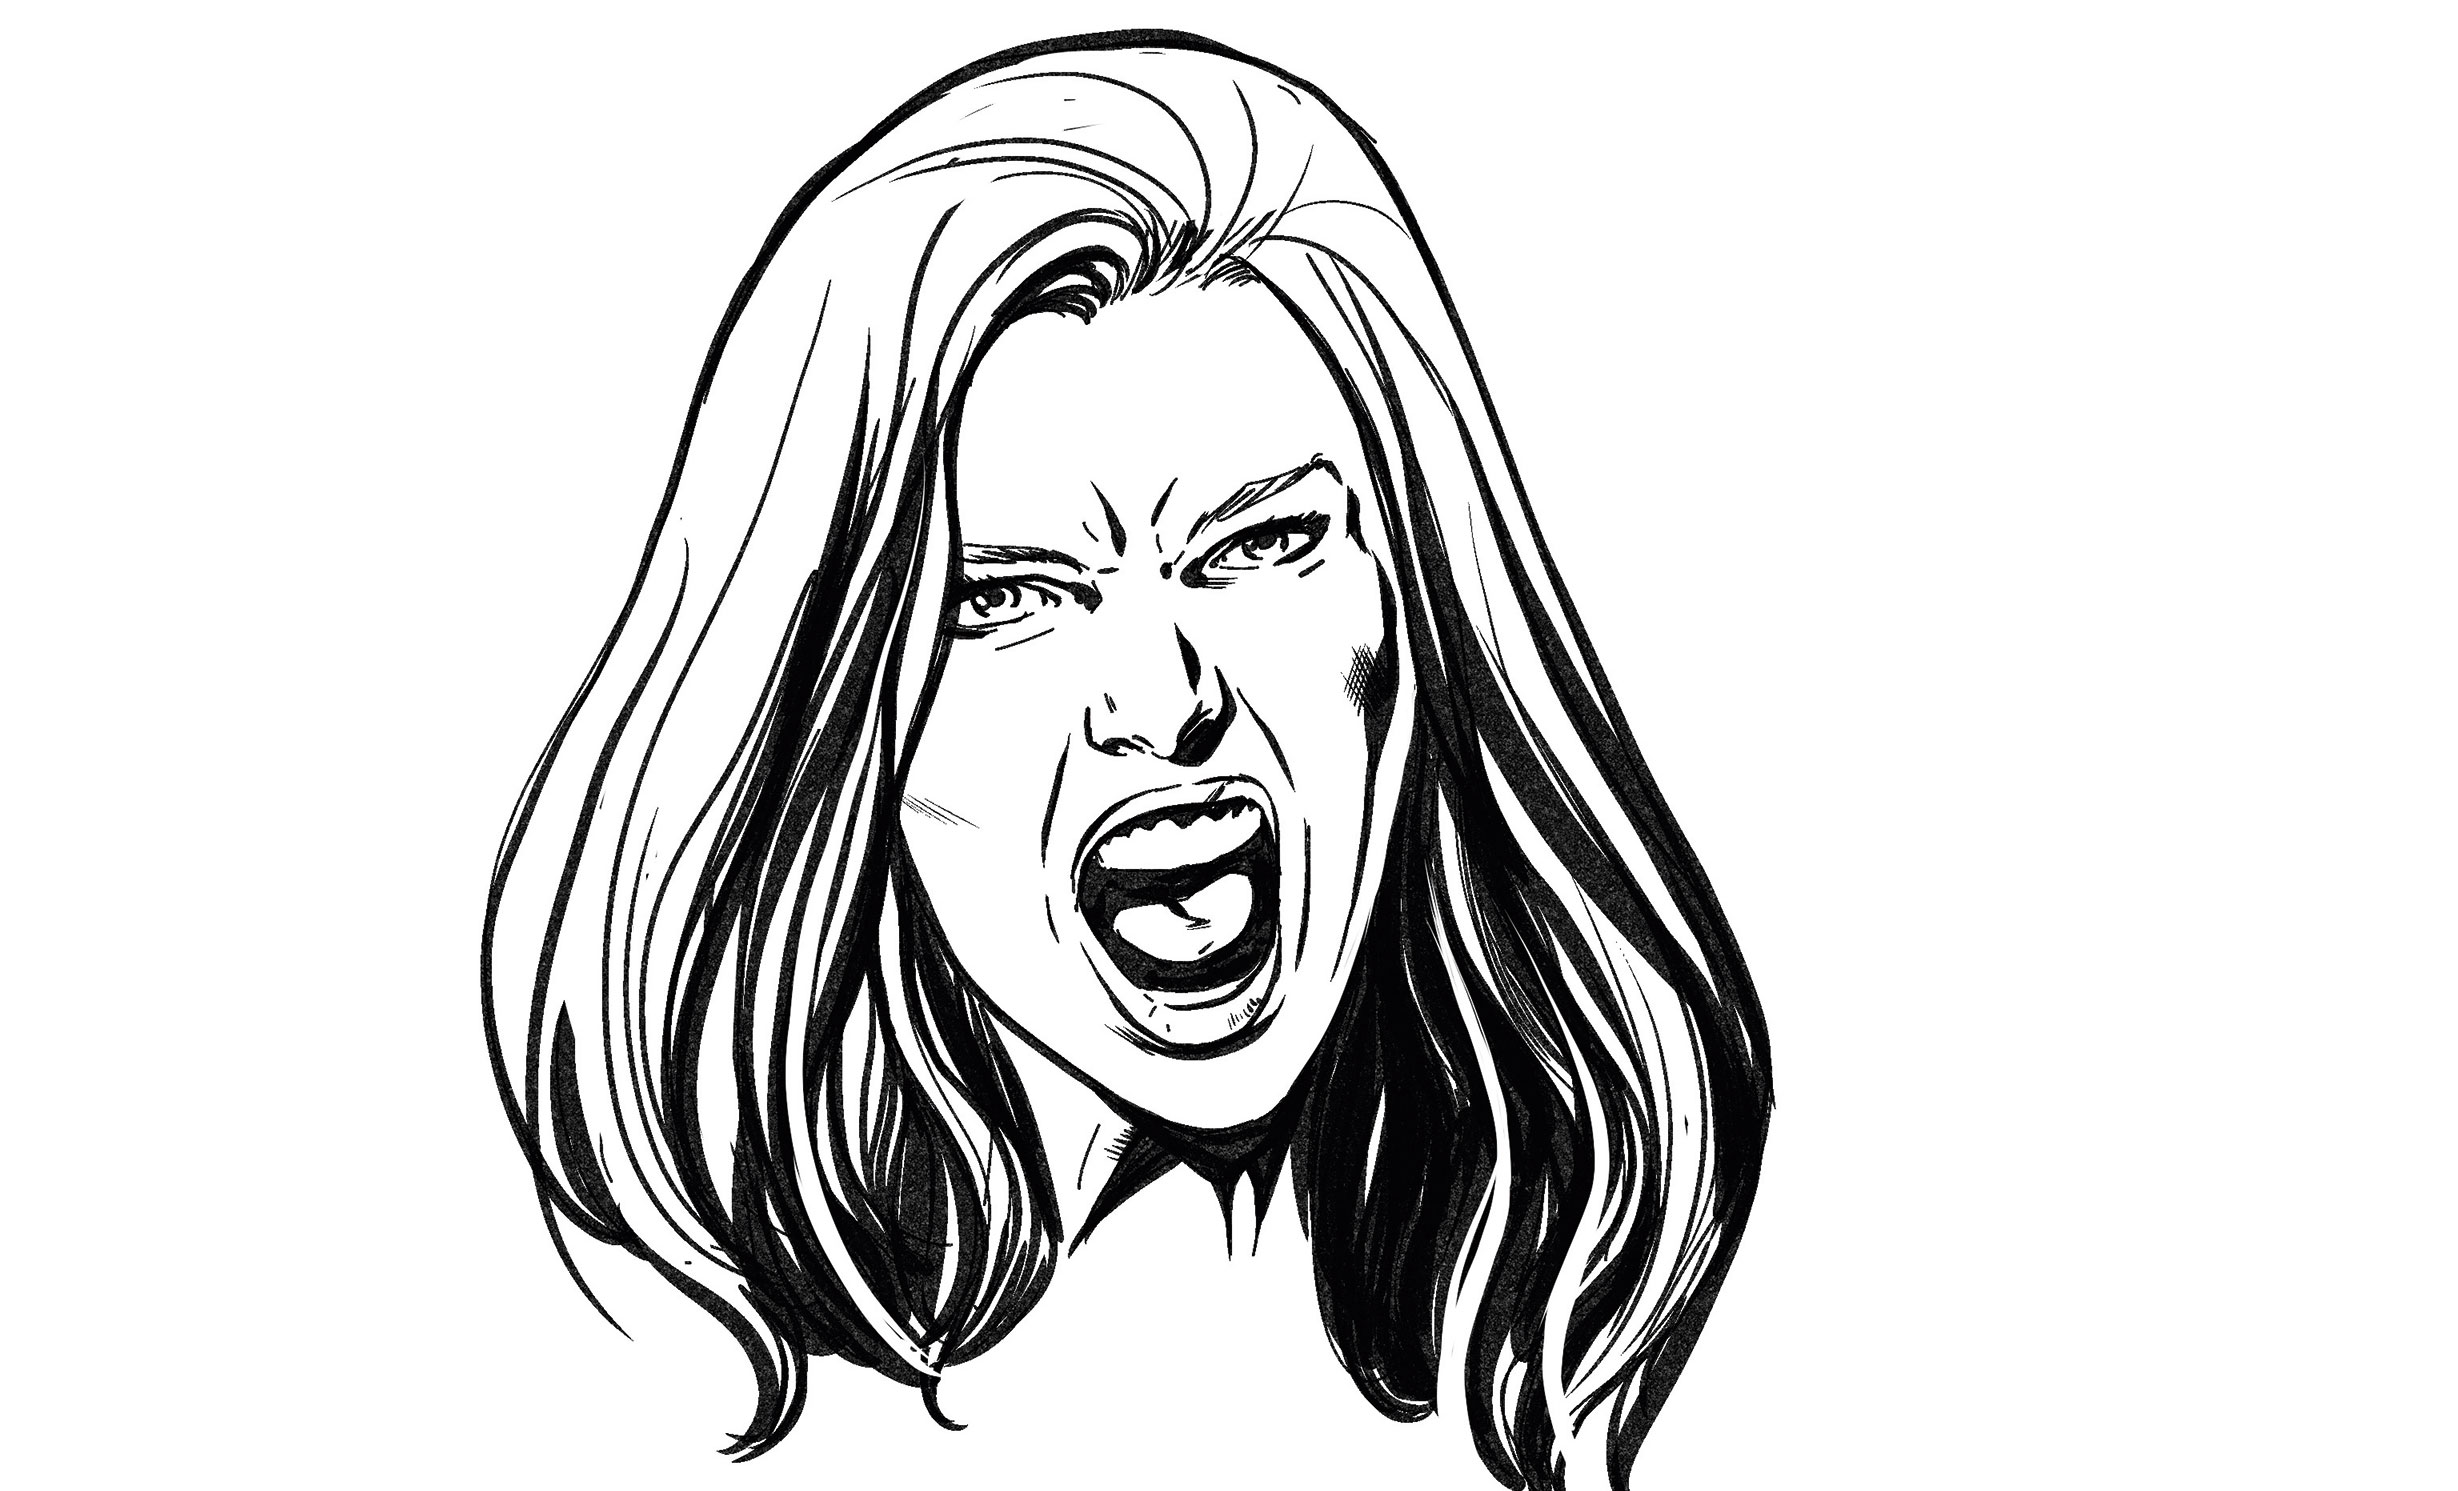 Drawing of a woman yelling